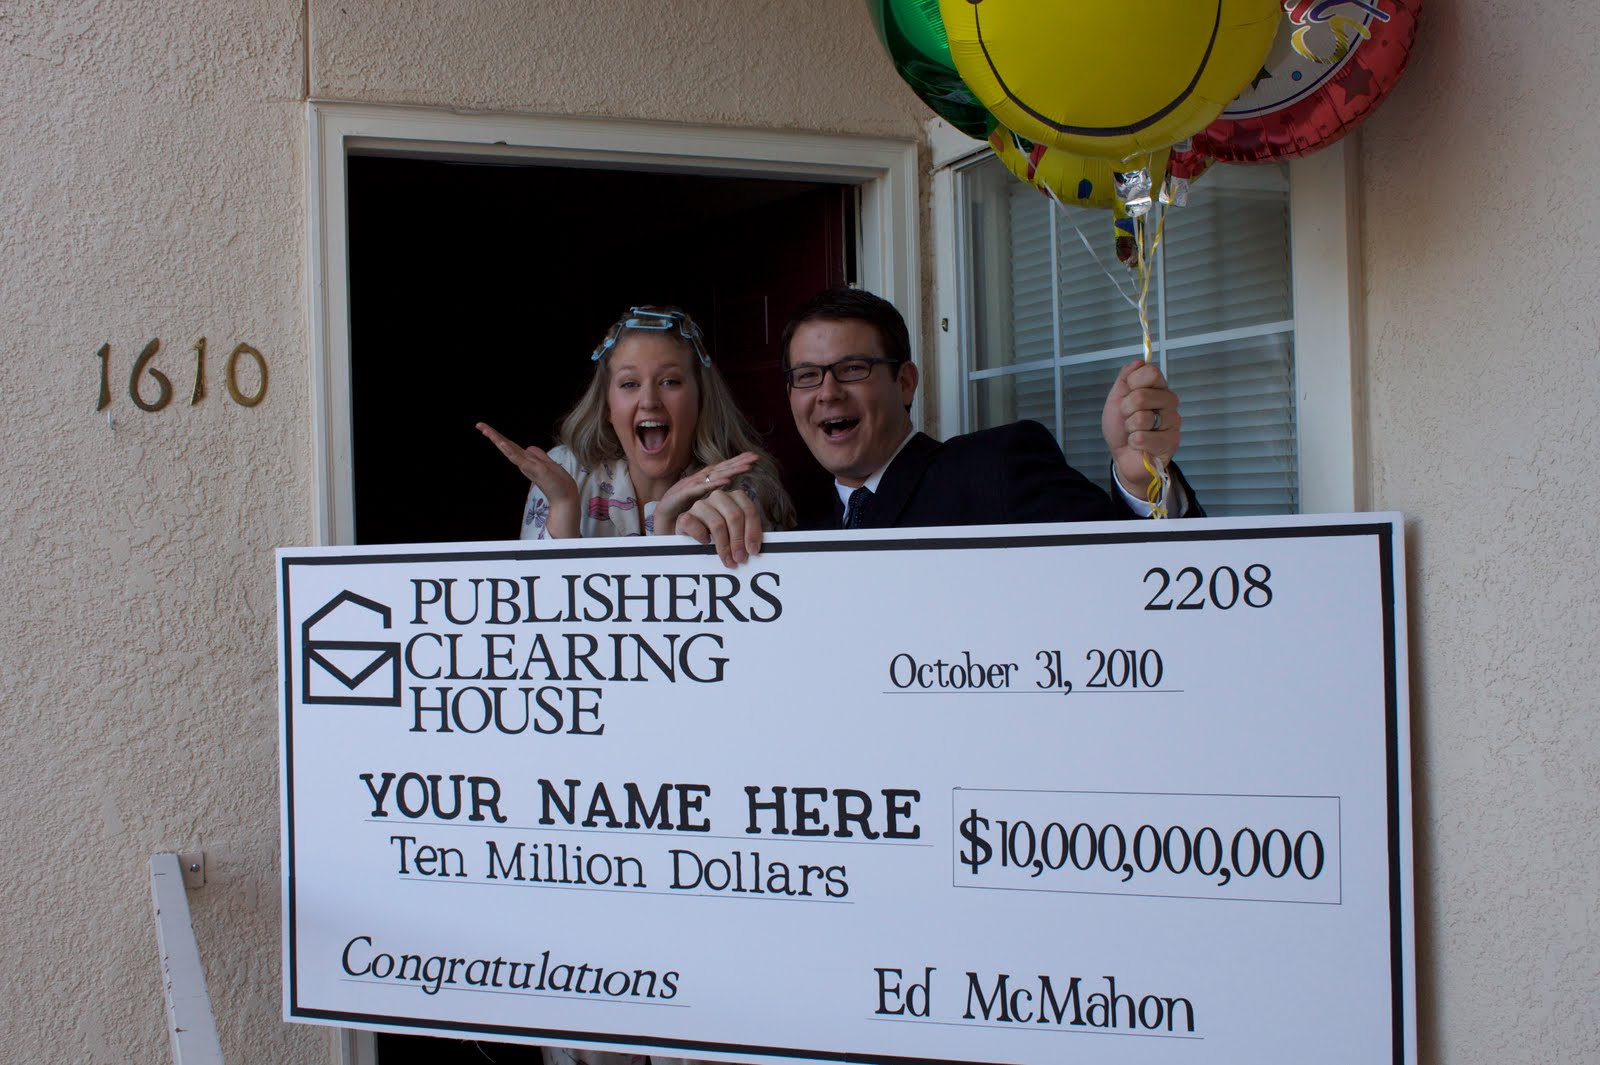 Pch10 Million Dollars Sweepstakes http://hastan.myblog.it/archive/2011/10/26/publishers-clearing-house-winners.html